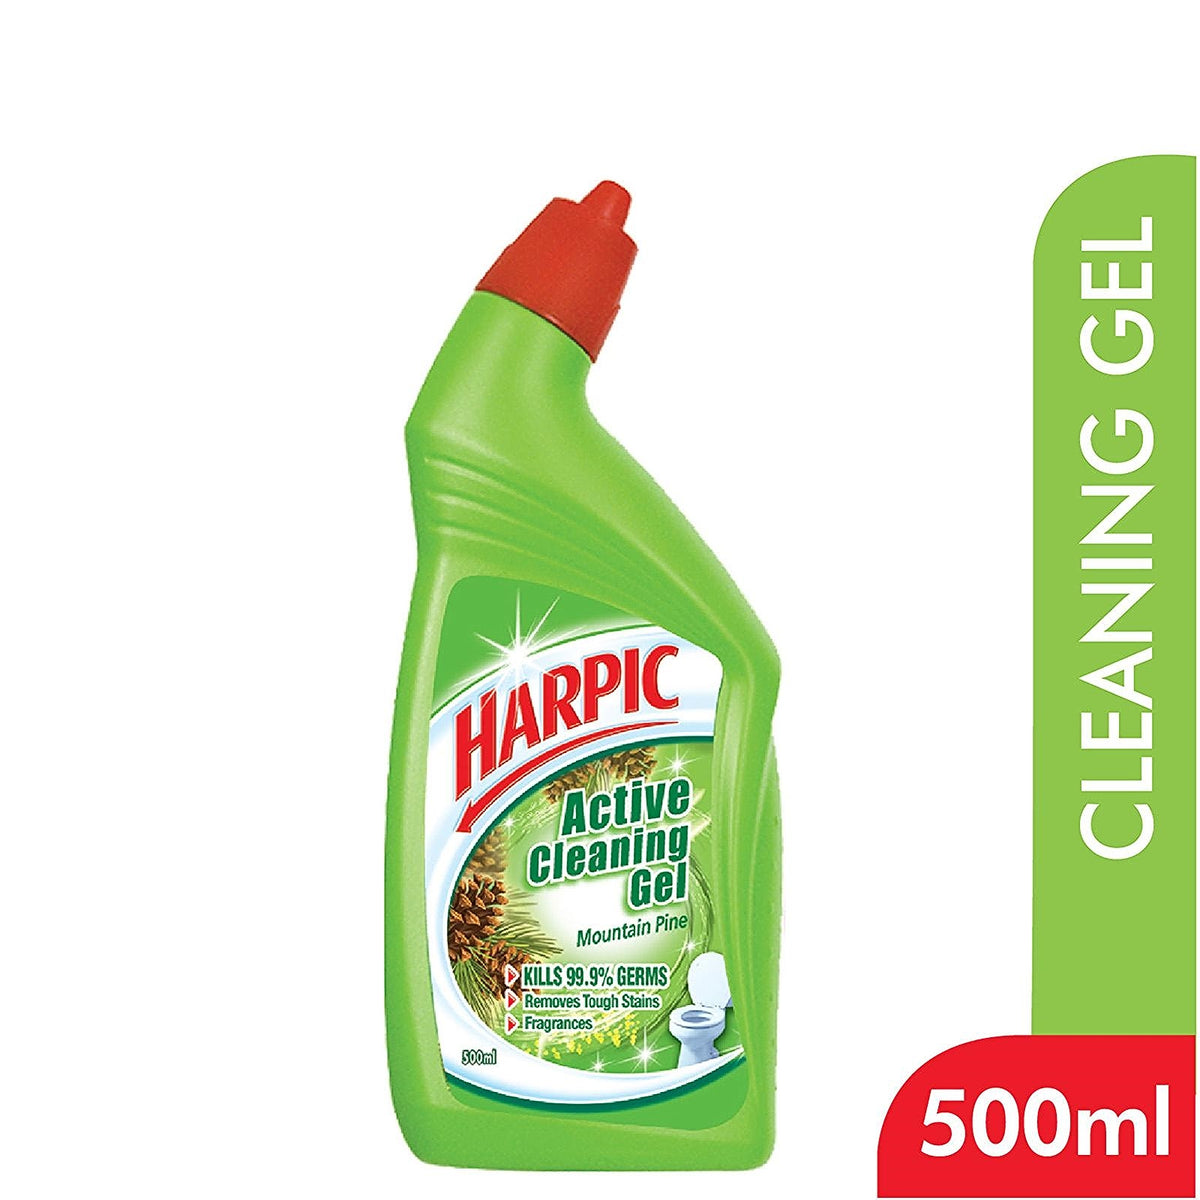 Harpic Active Cleaning Gel 3x500ml Mountain Pine Provisionshop Com